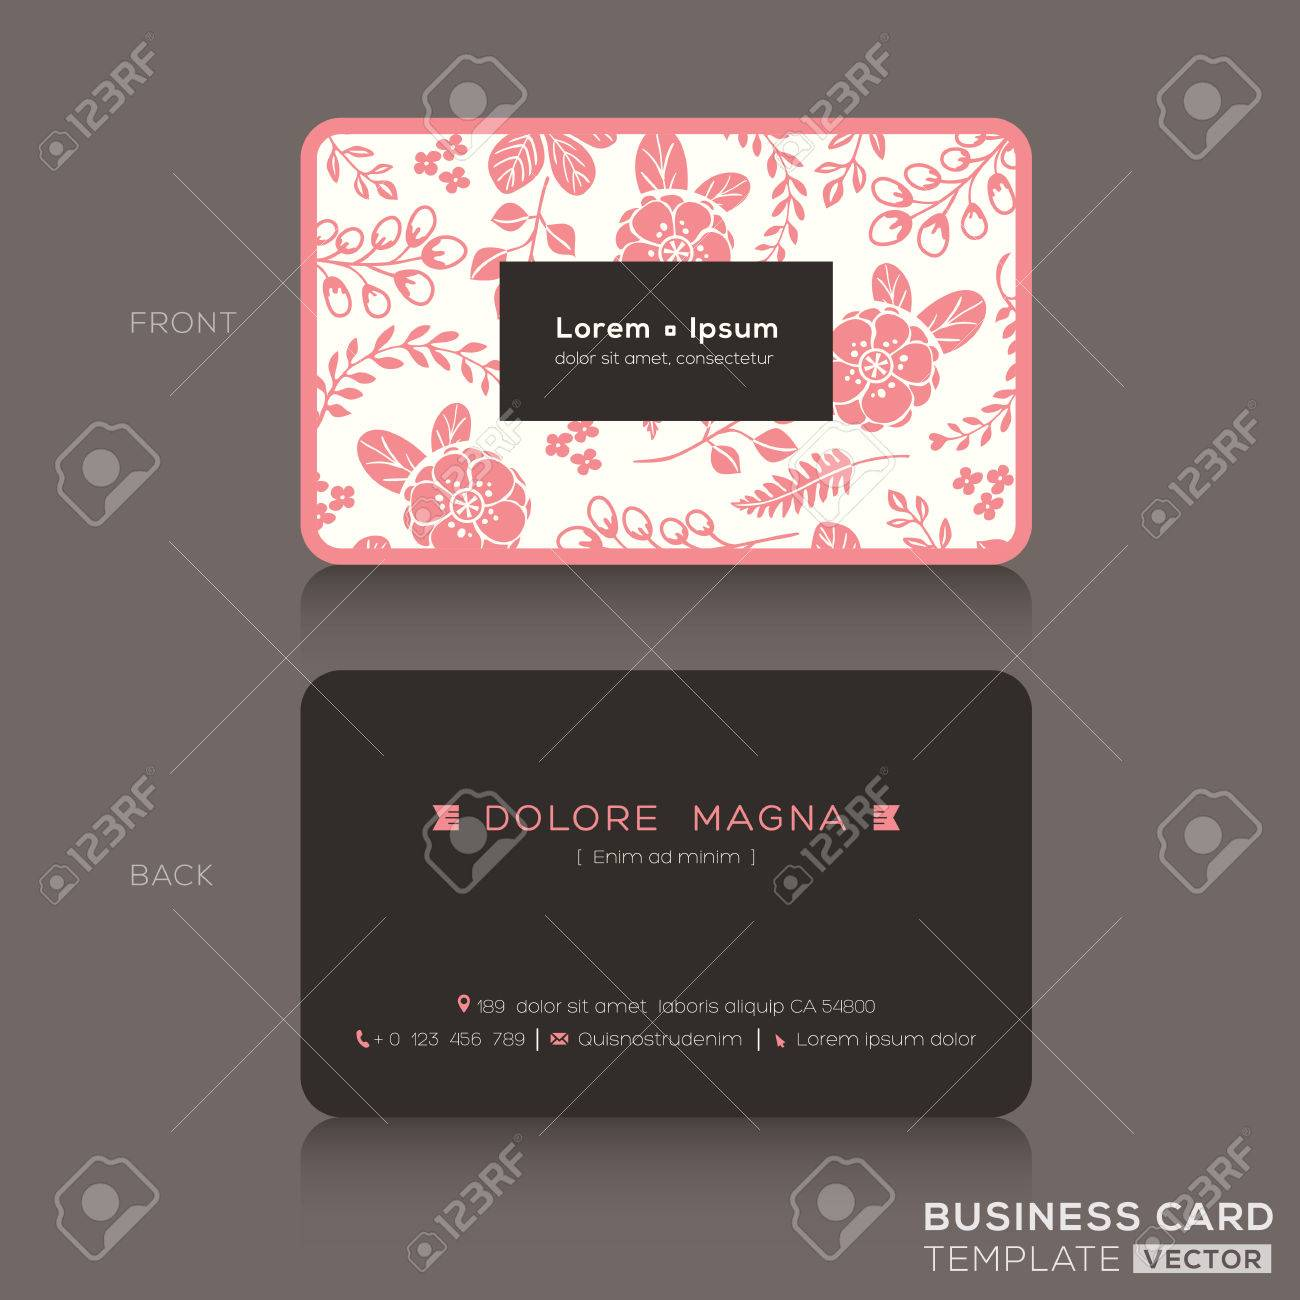 Cute business card design template with pink floral pattern cute business card design template with pink floral pattern background stock vector 39559360 accmission Choice Image